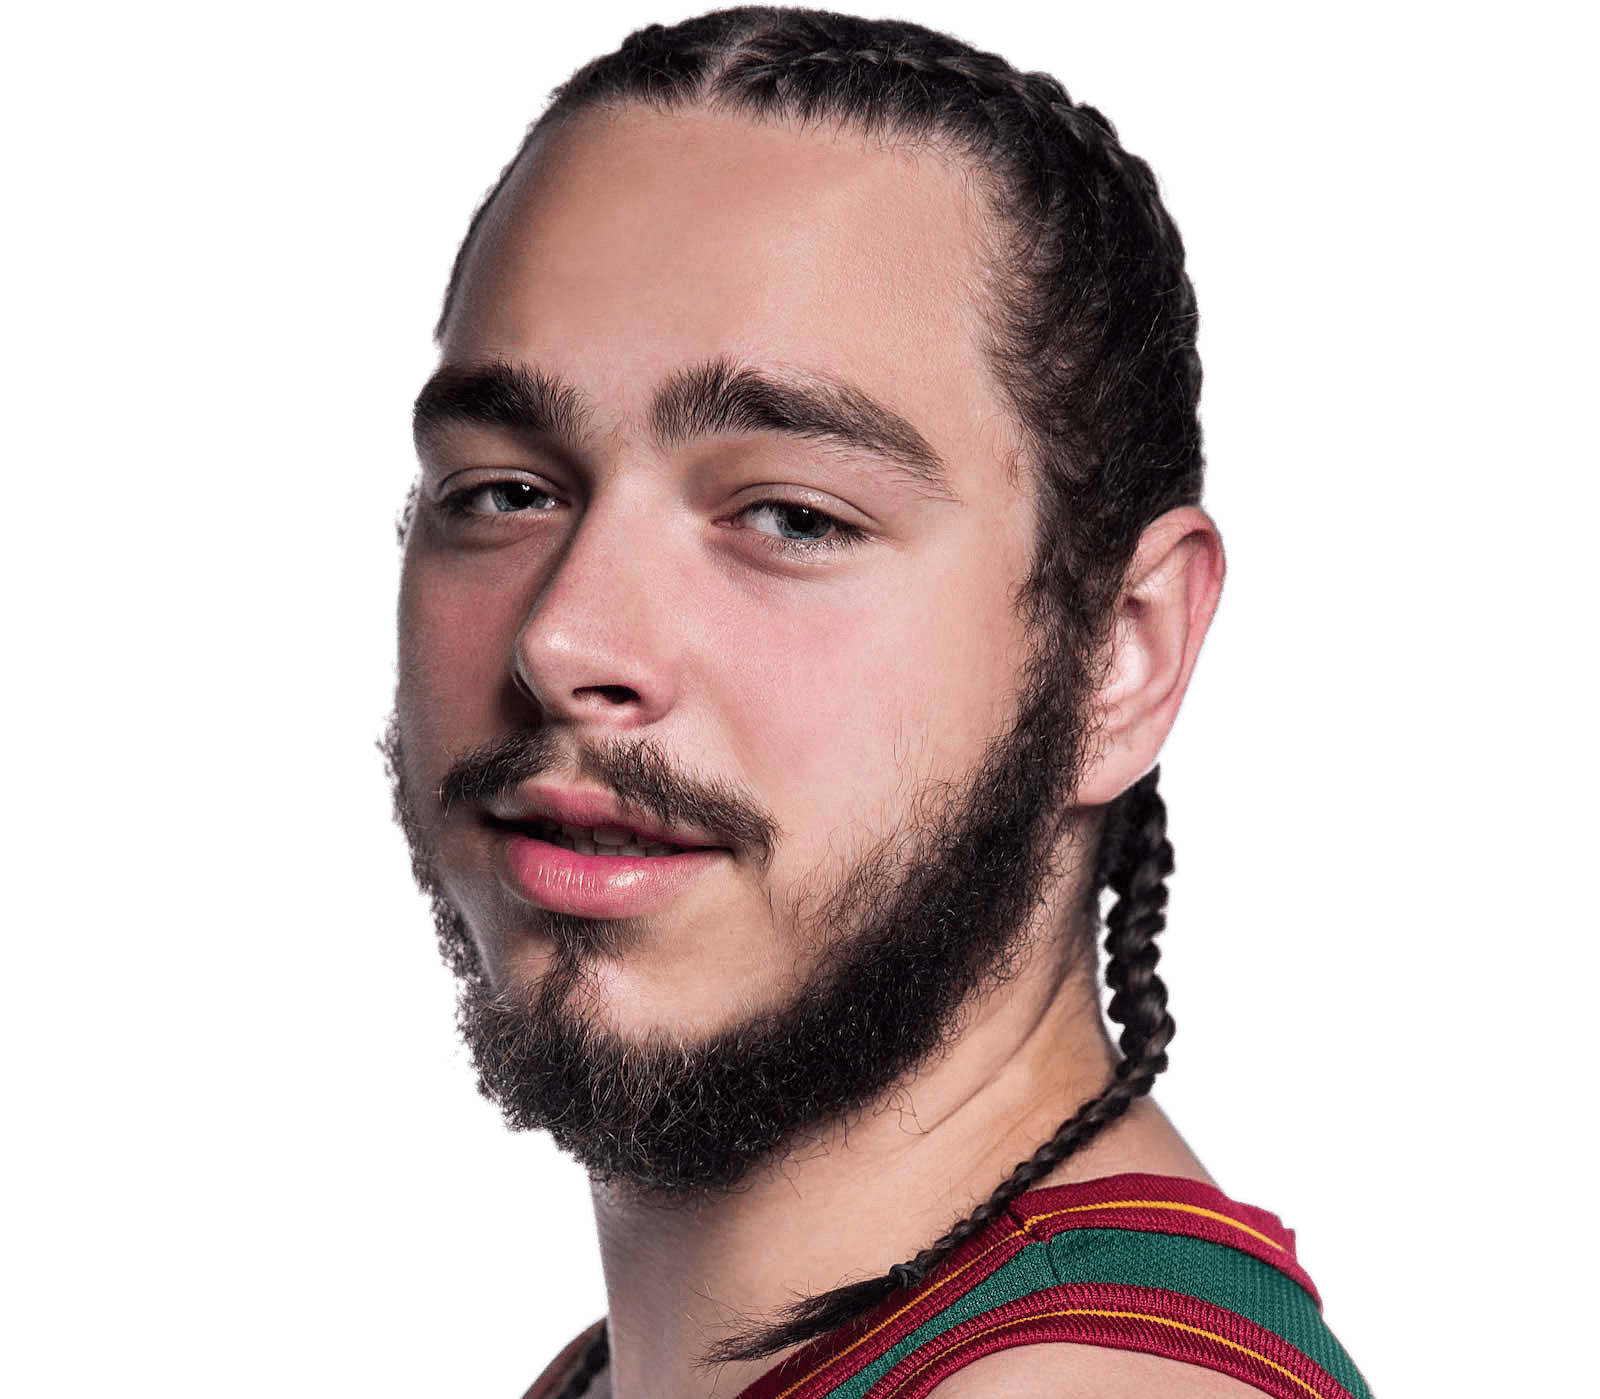 Post Malone Clip Art: Post Malone Png 10 Free Cliparts